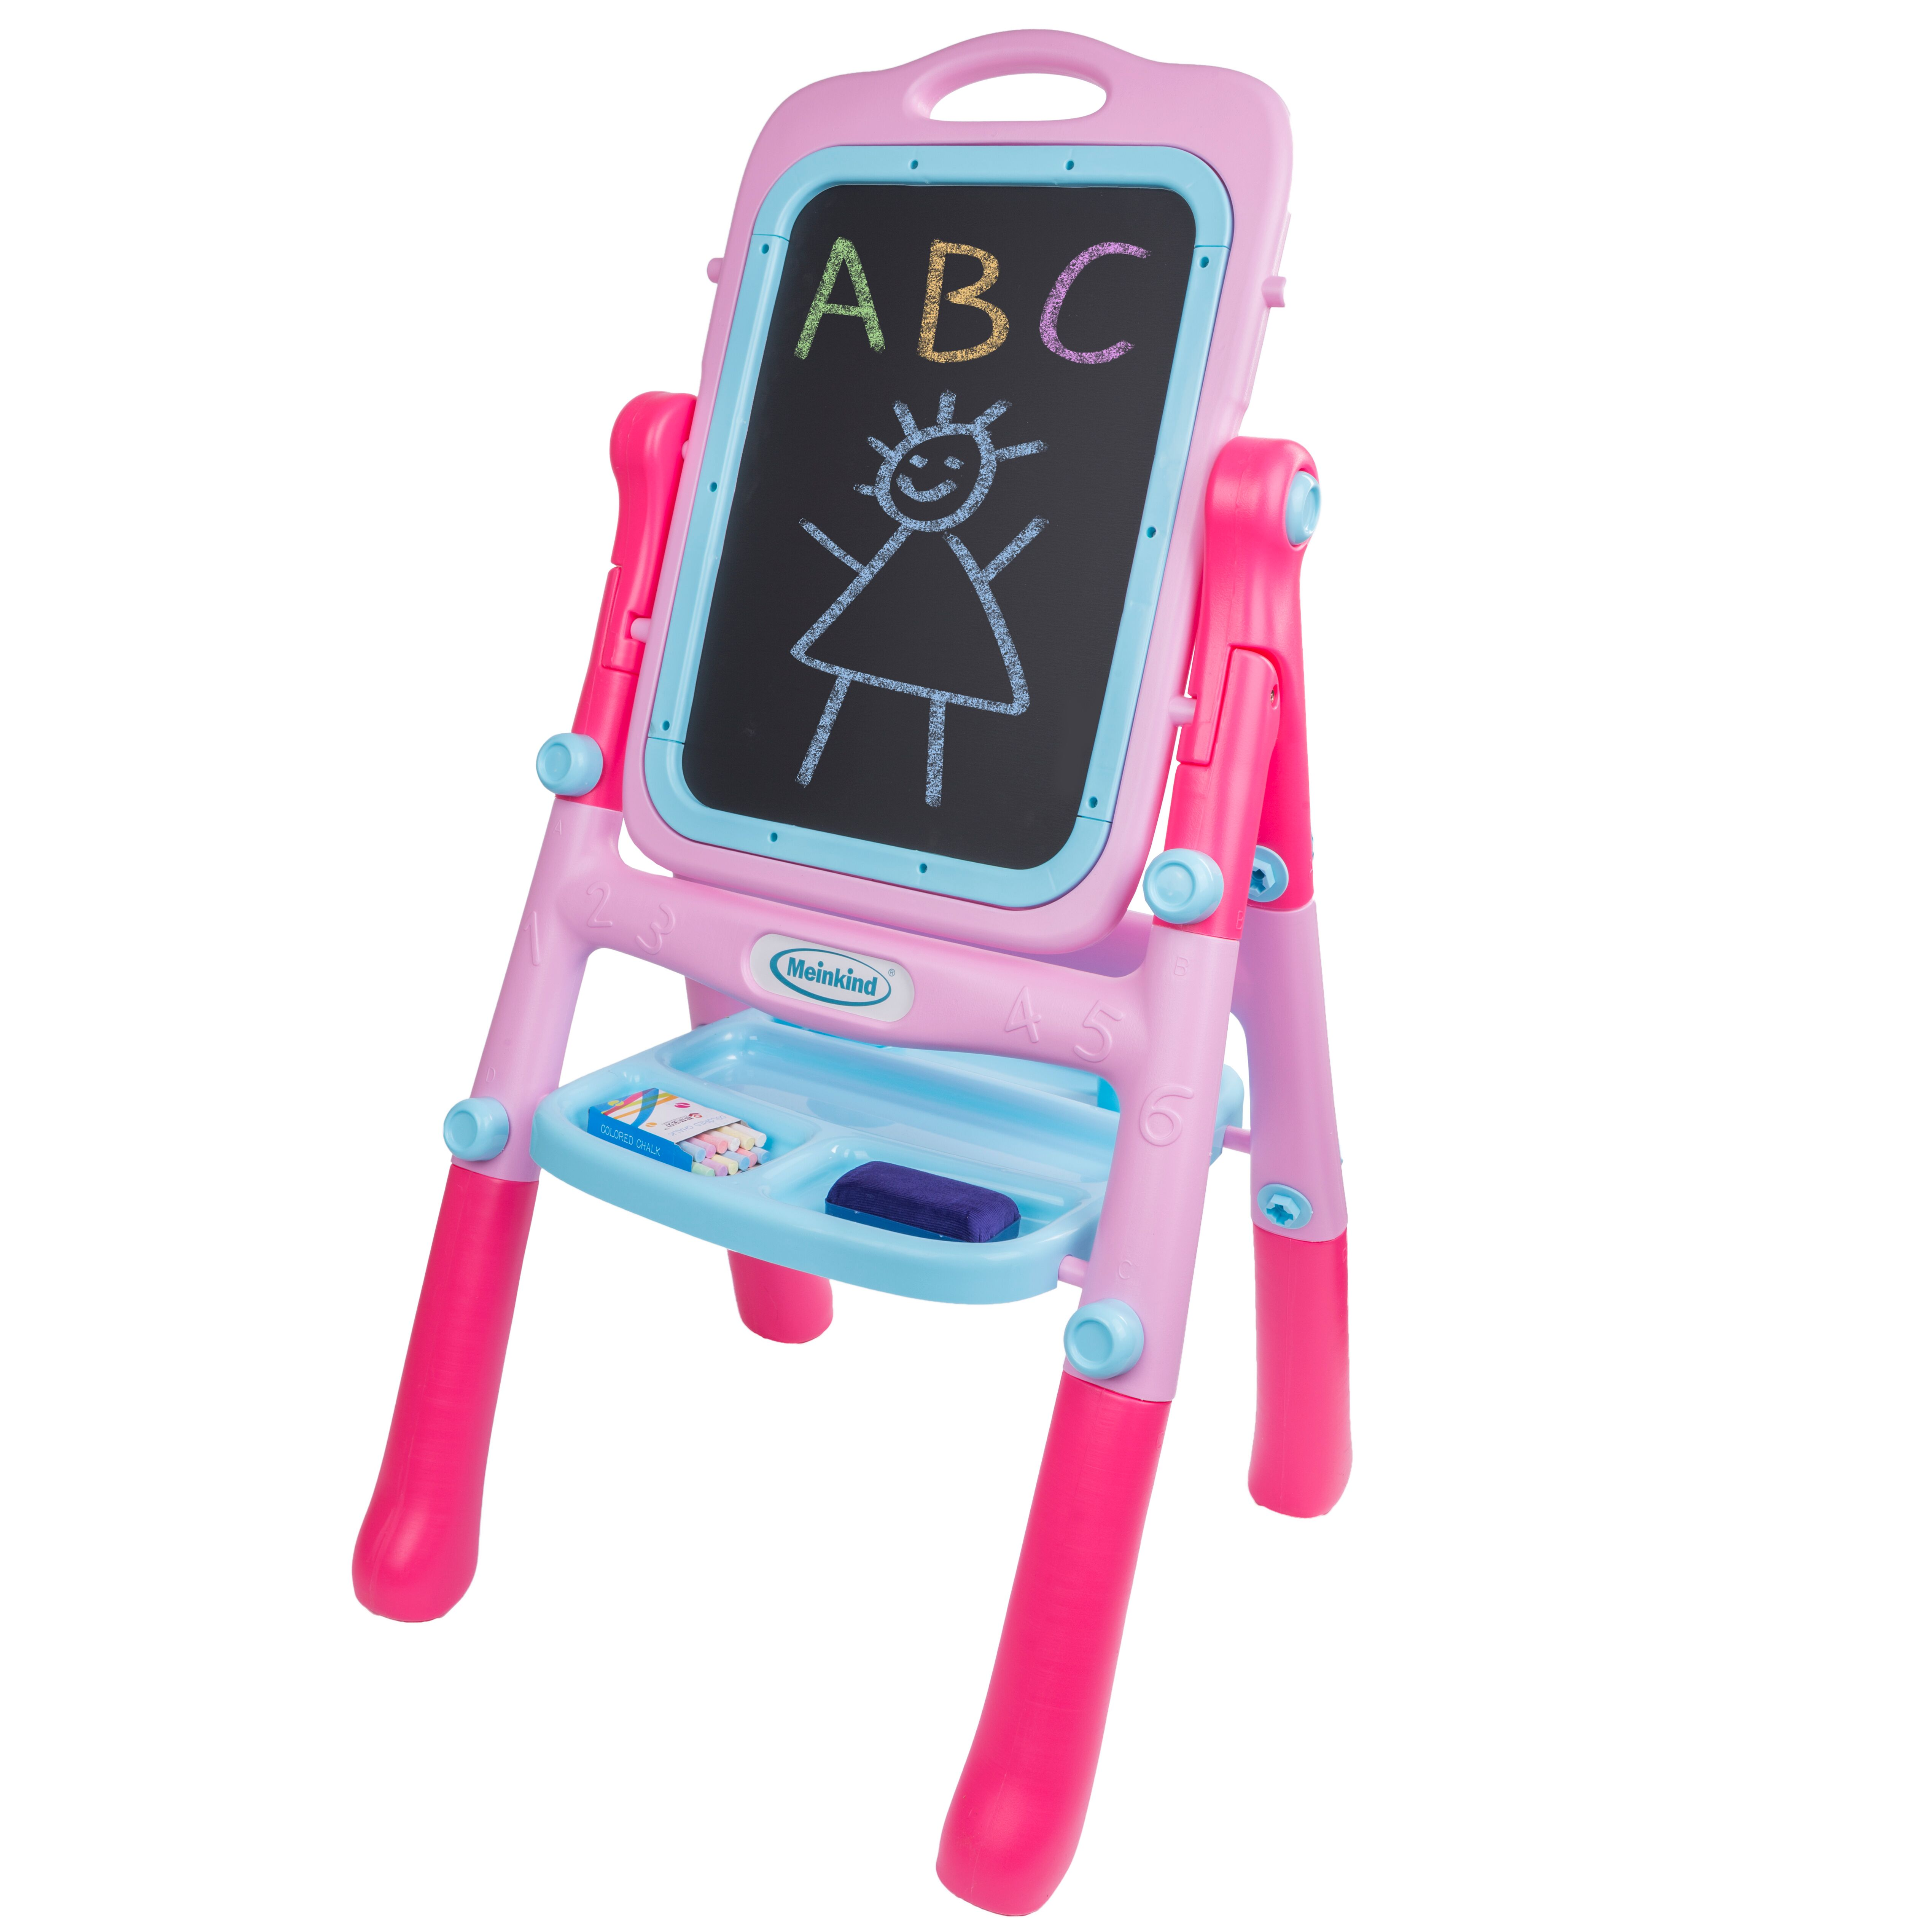 Deluxe Double-Sided Children's Art Easel - Pink